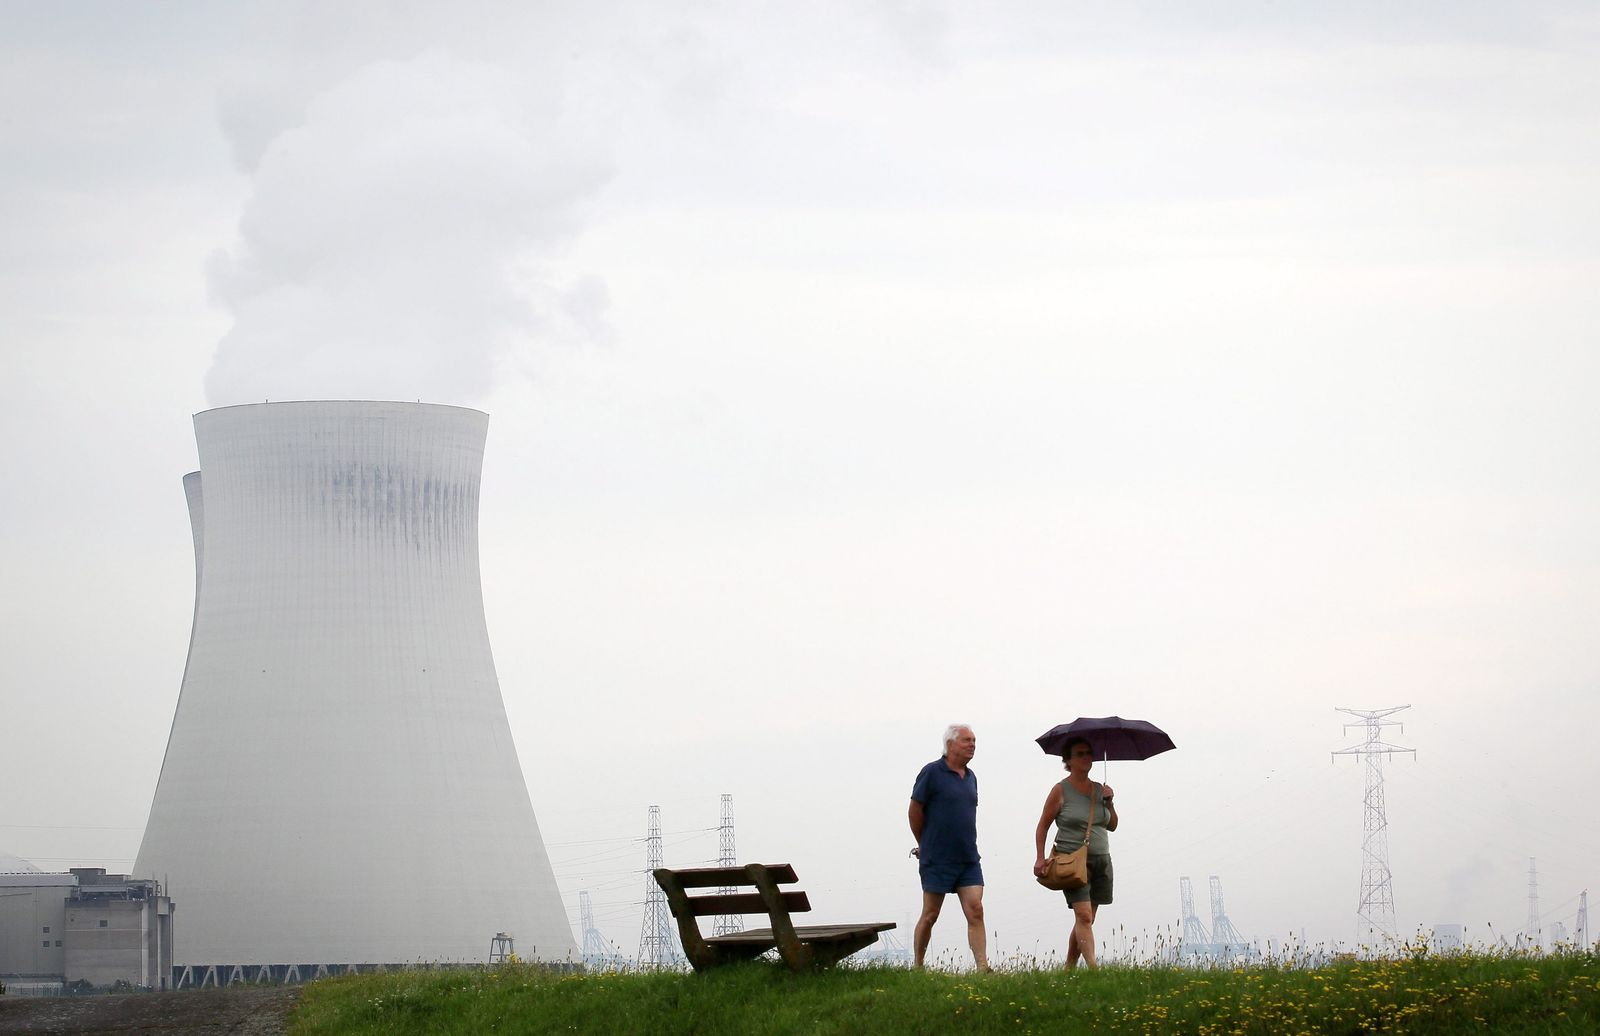 Nuclear power plant in Doel